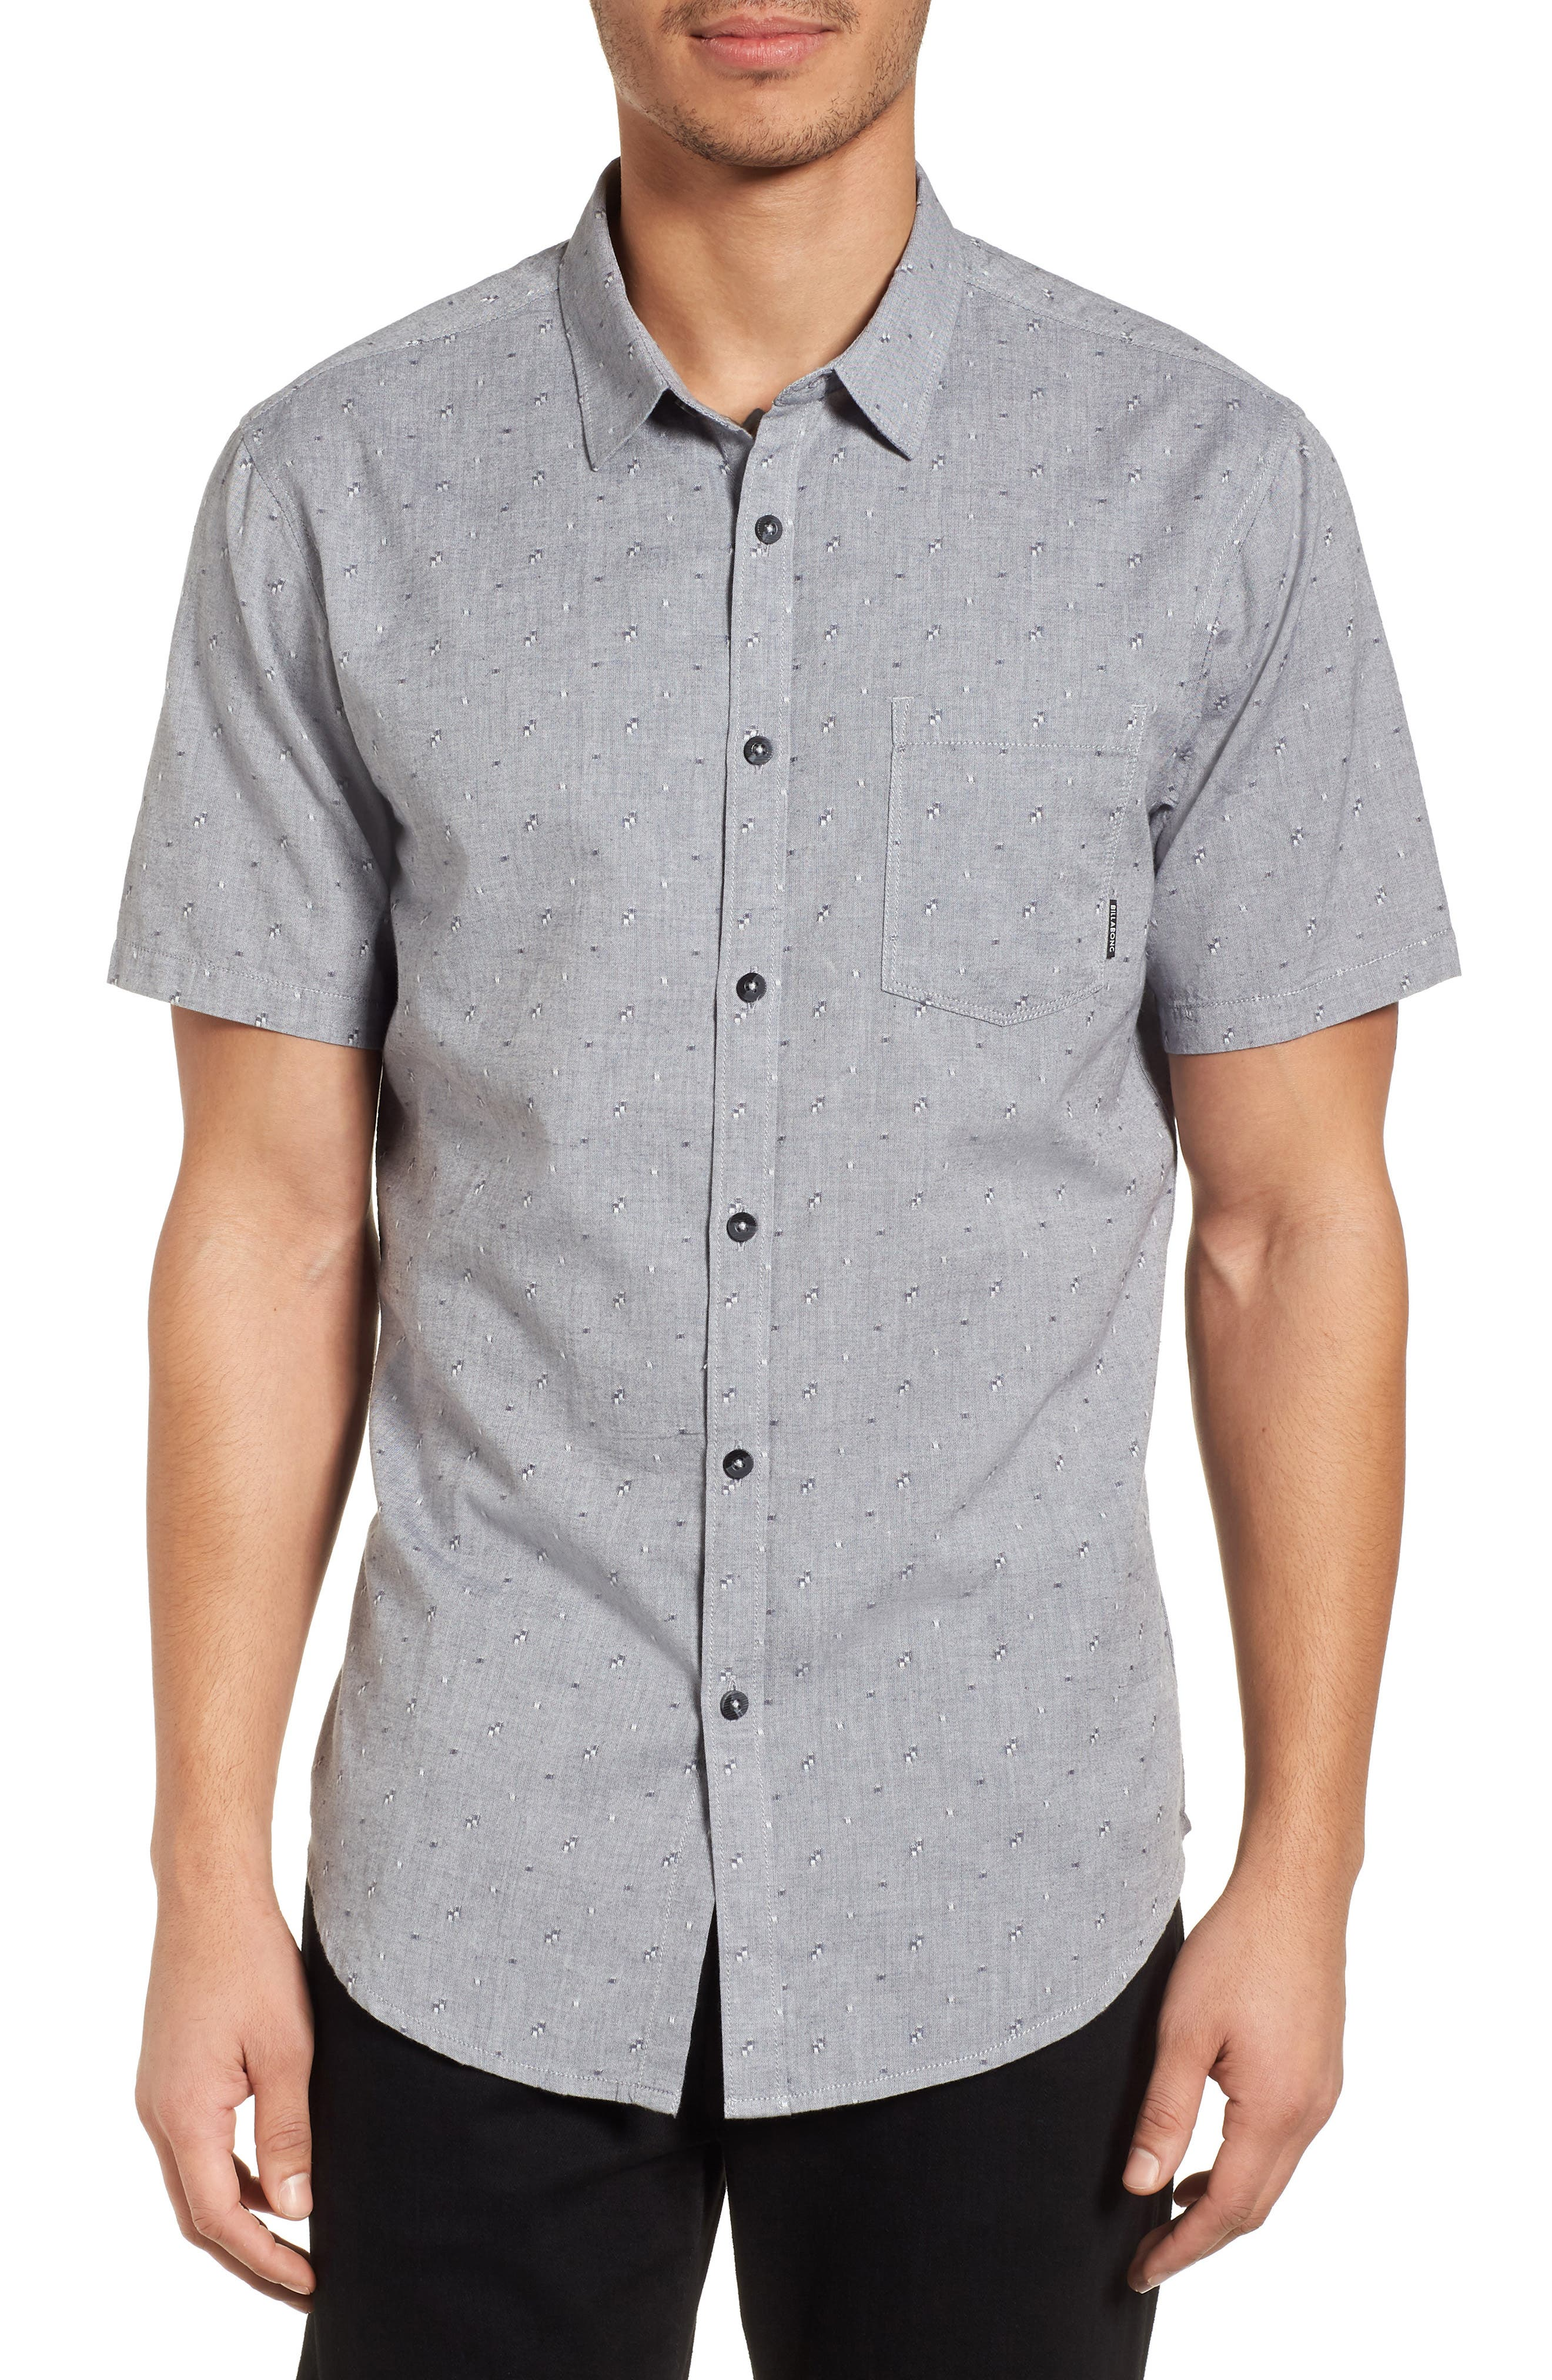 Alternate Image 1 Selected - Billabong Sundays Jacquard Woven Shirt